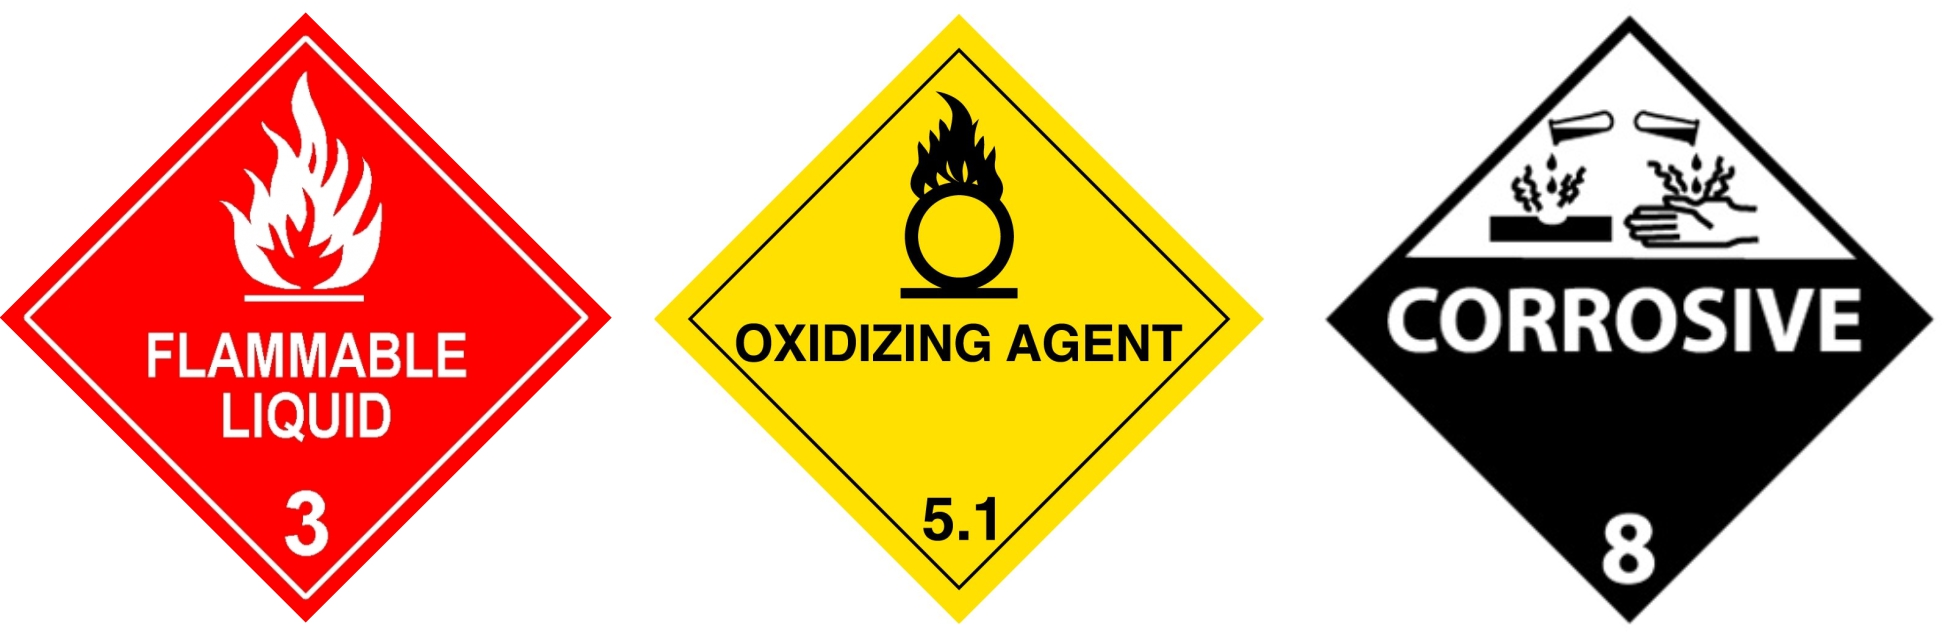 roll amazon ghs safety decal diamond nfpa chemical sign scientific dp new osha hmis industrial label com